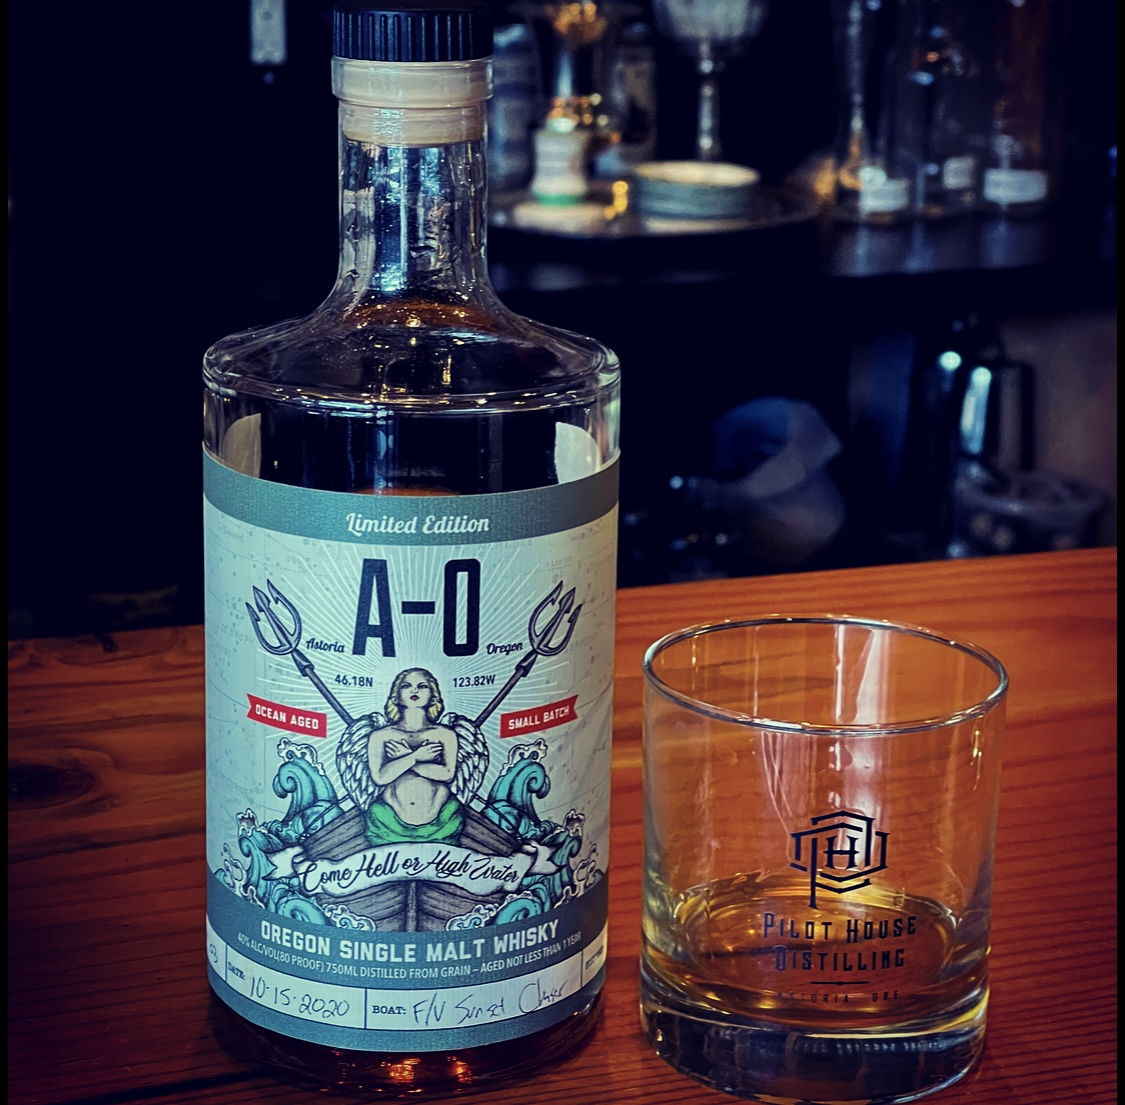 Larry Cary Pilot House Distilling – Culinary Treasure Podcast Episode 84 by Steven Shomler